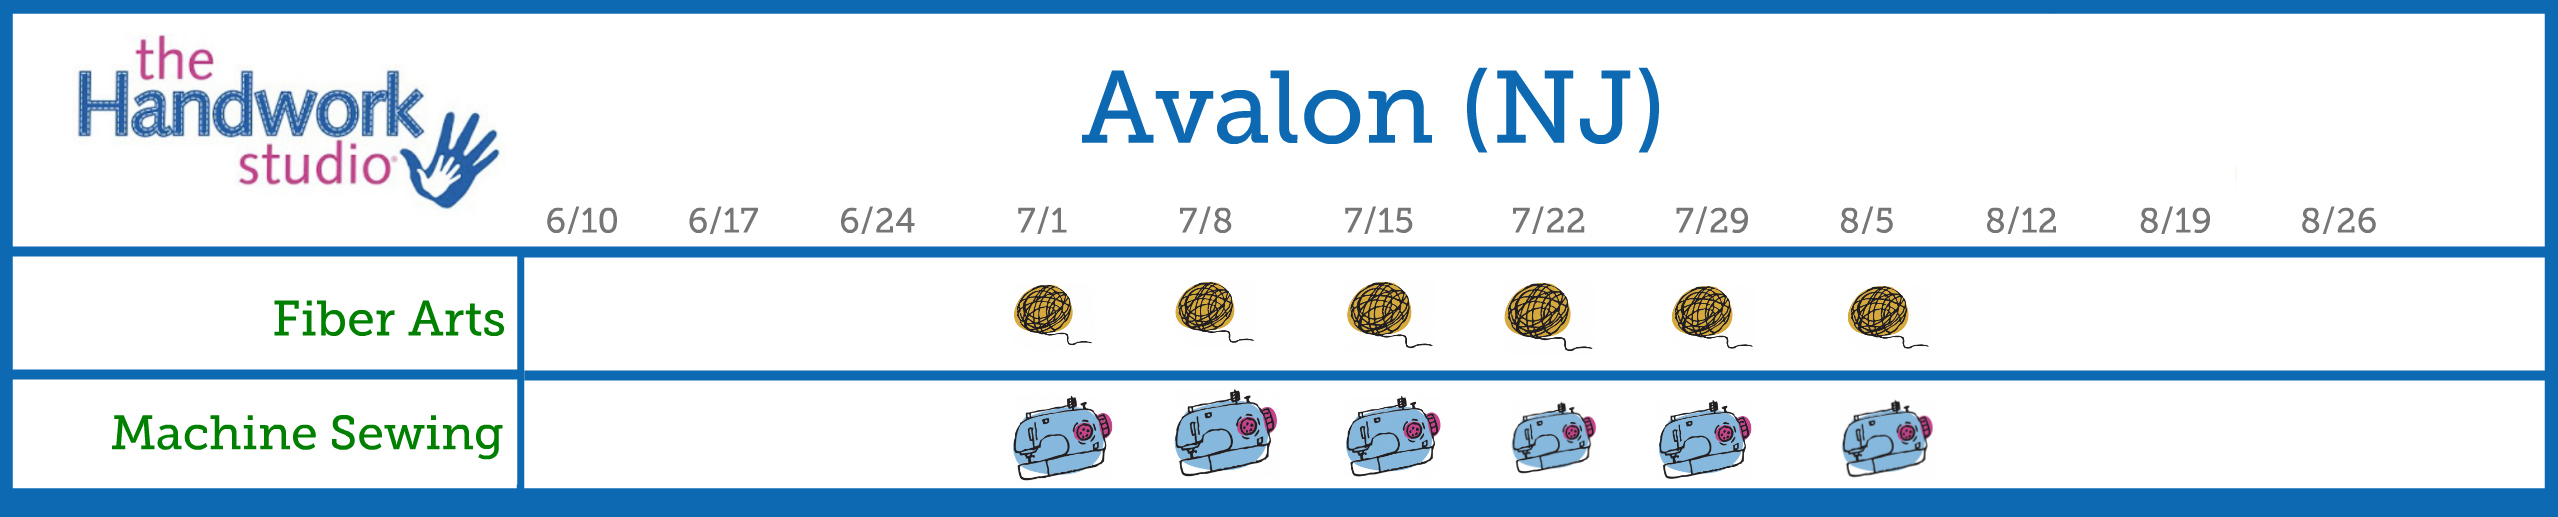 Avalon Program Schedule 2.0